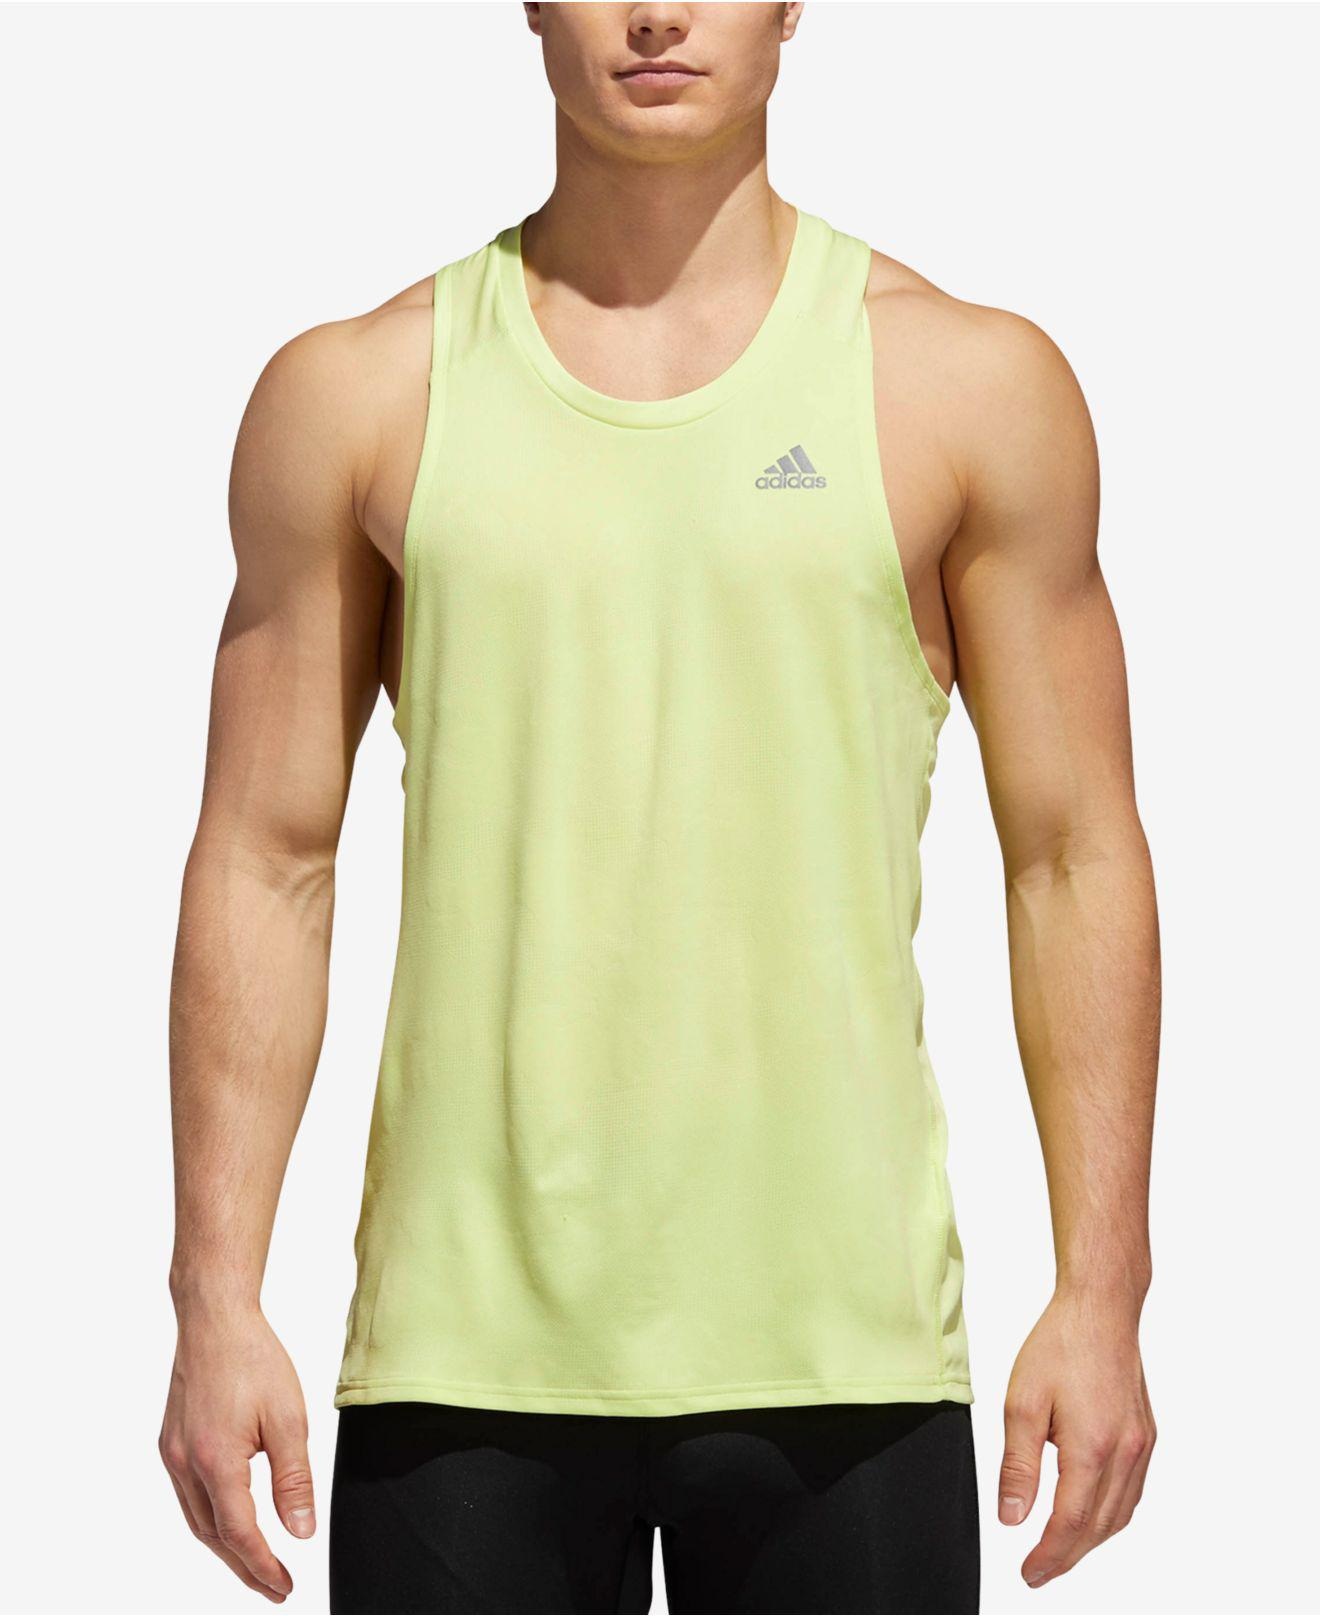 brand new 36687 4bd49 Adidas Yellow Response Climacool® Running Tank Top for men